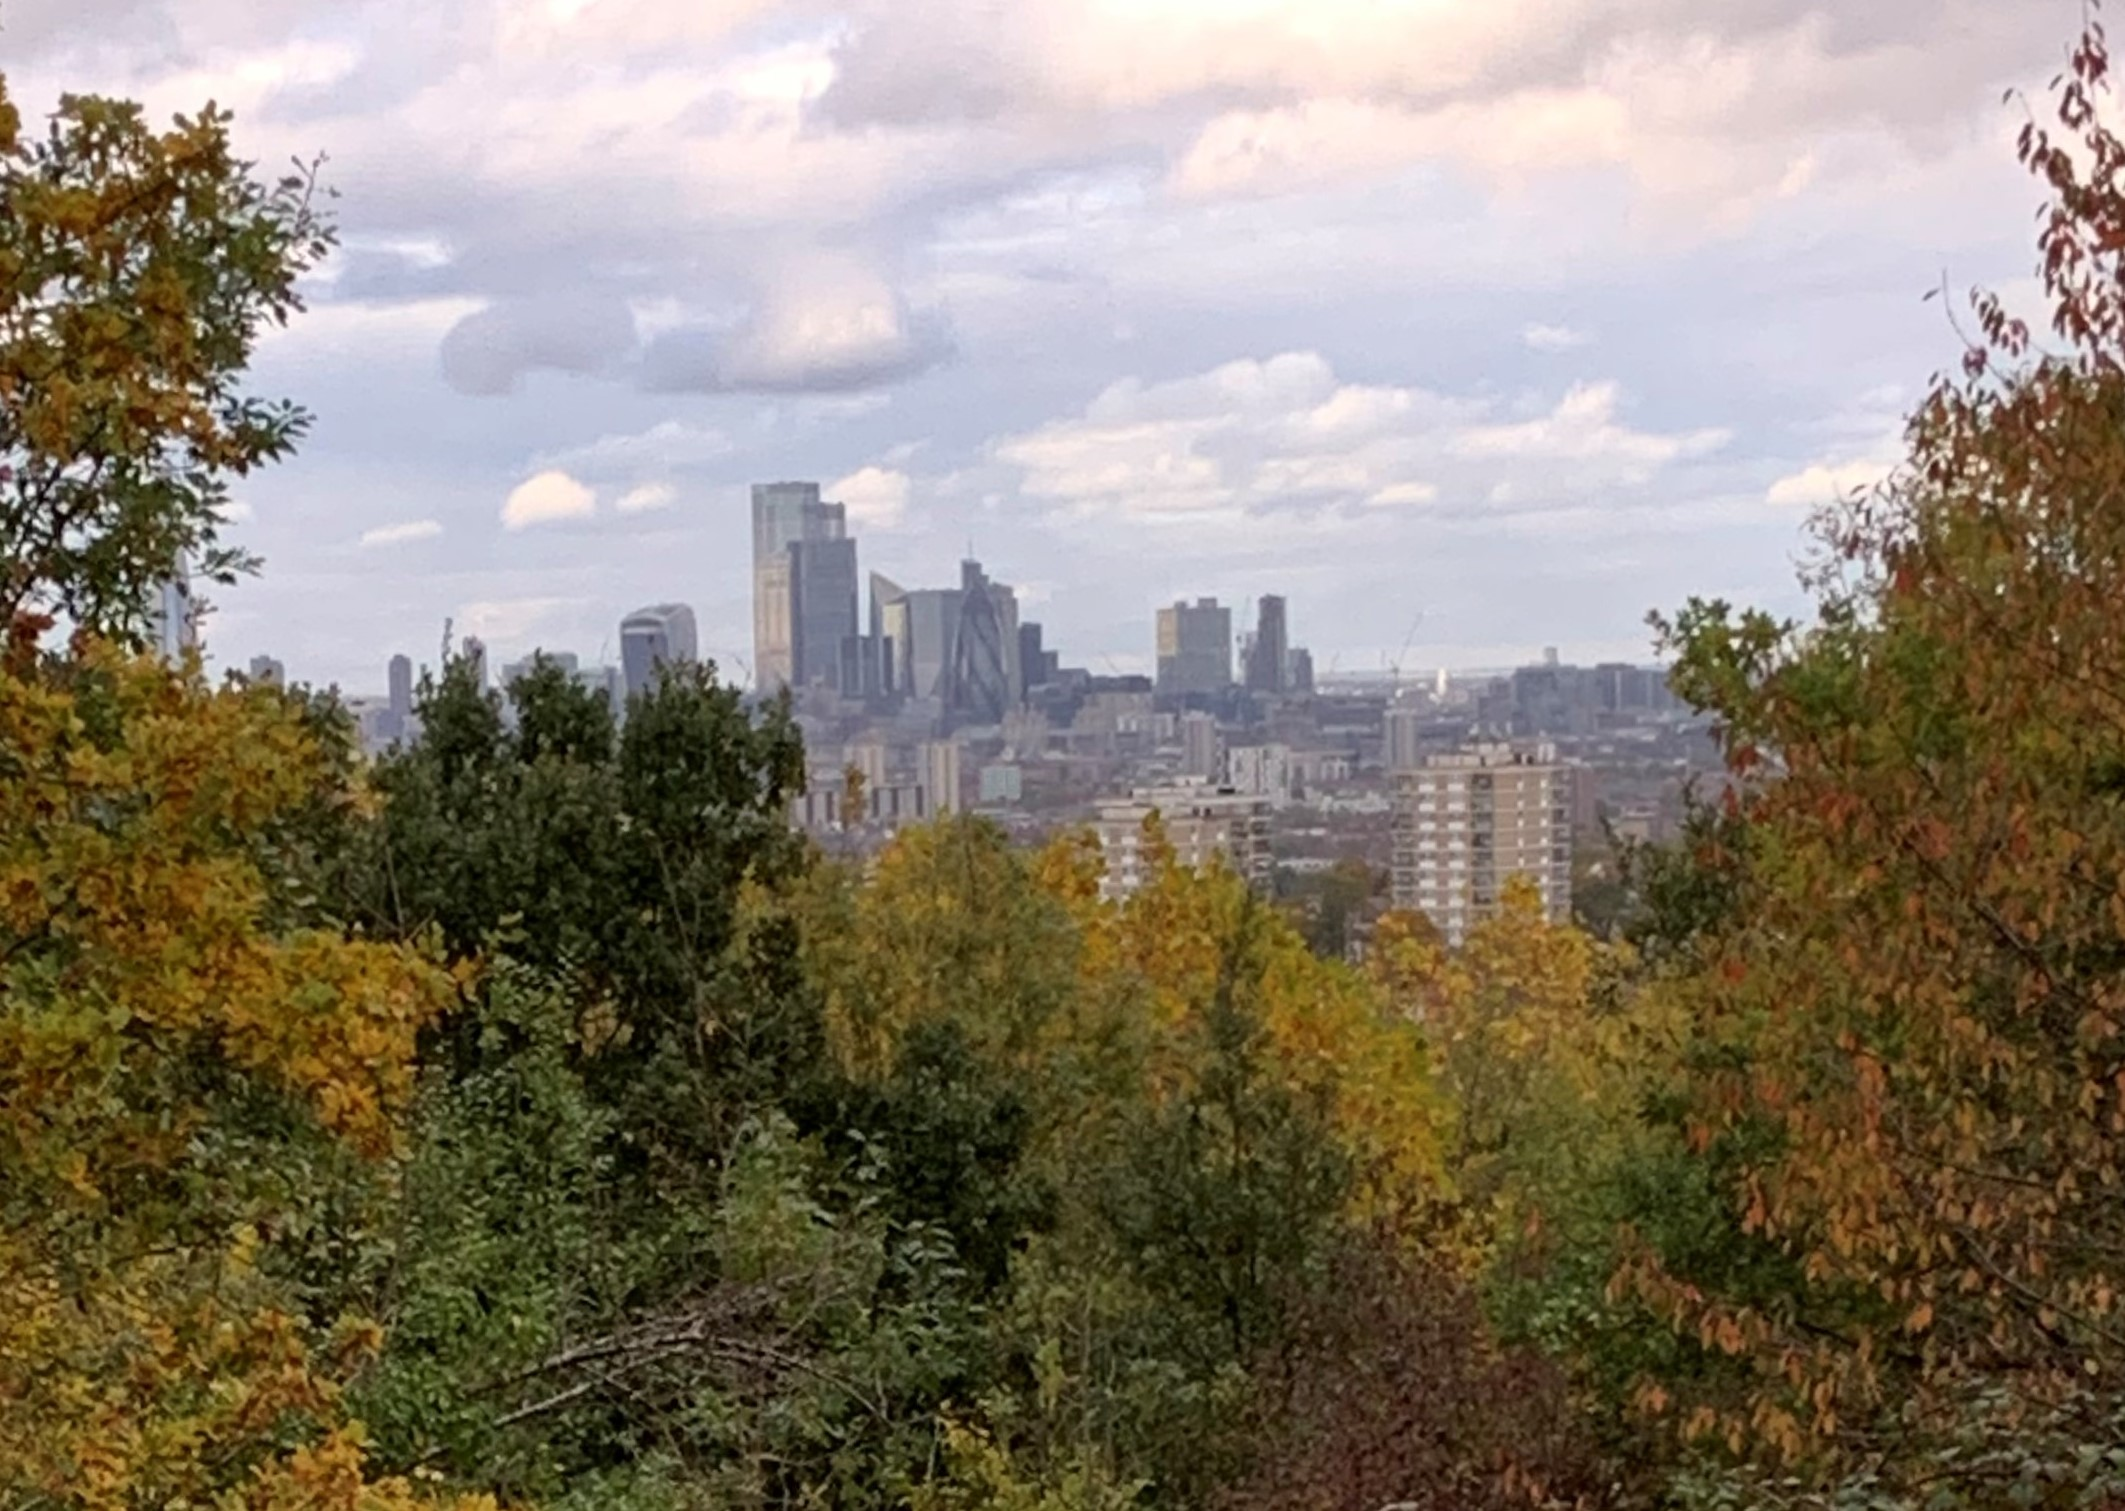 View of the City above autumnal trees in foreground, with clouds scudding across a pale sky above